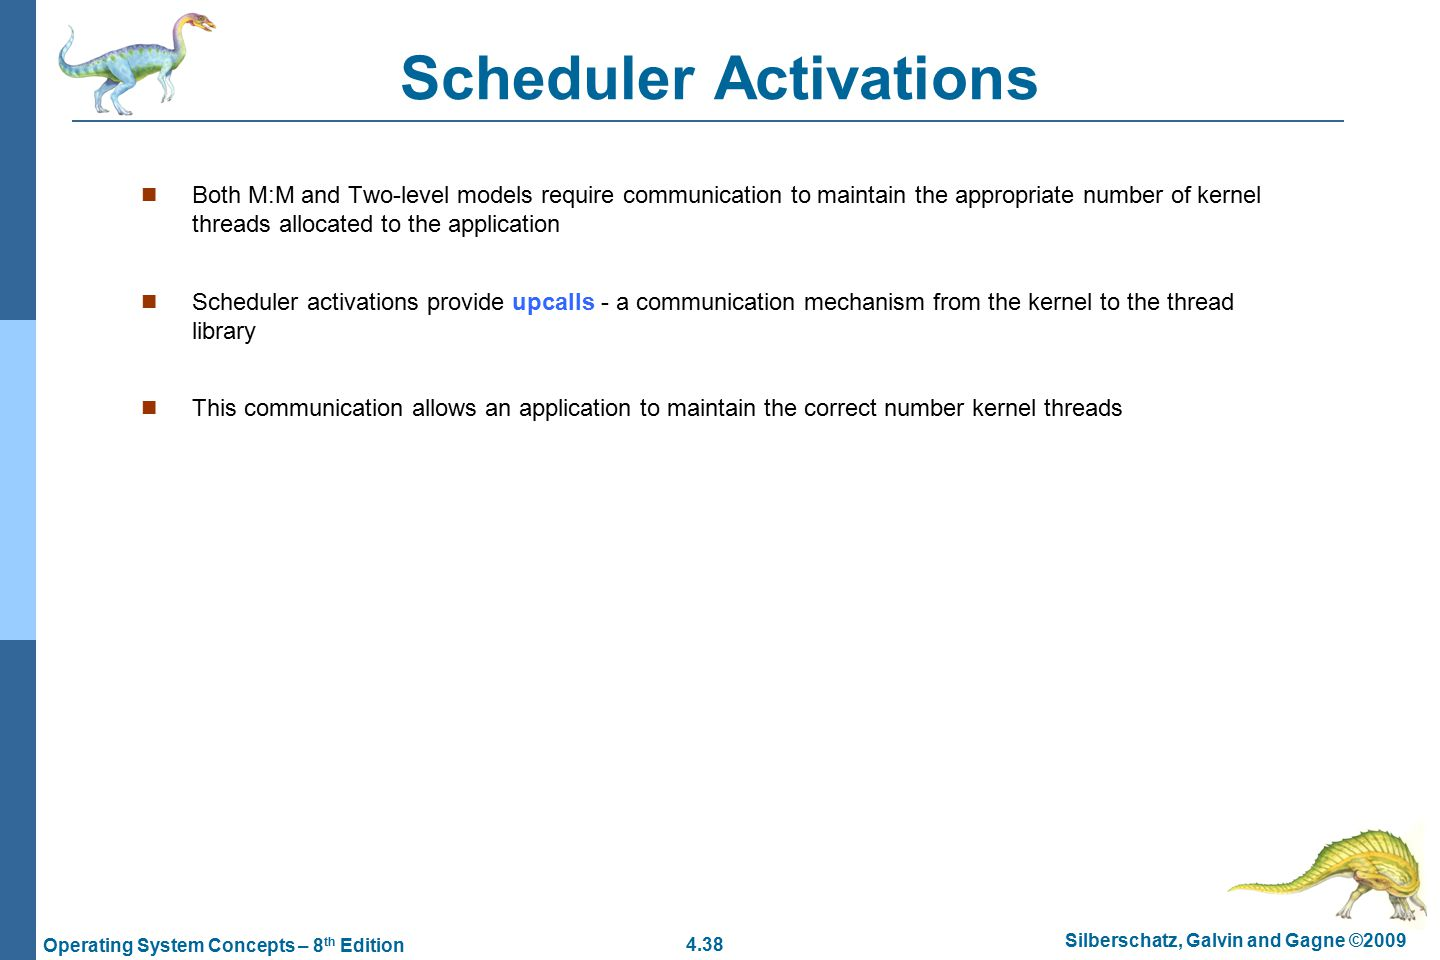 4.38 Silberschatz, Galvin and Gagne ©2009 Operating System Concepts – 8 th Edition Scheduler Activations Both M:M and Two-level models require communication to maintain the appropriate number of kernel threads allocated to the application Scheduler activations provide upcalls - a communication mechanism from the kernel to the thread library This communication allows an application to maintain the correct number kernel threads